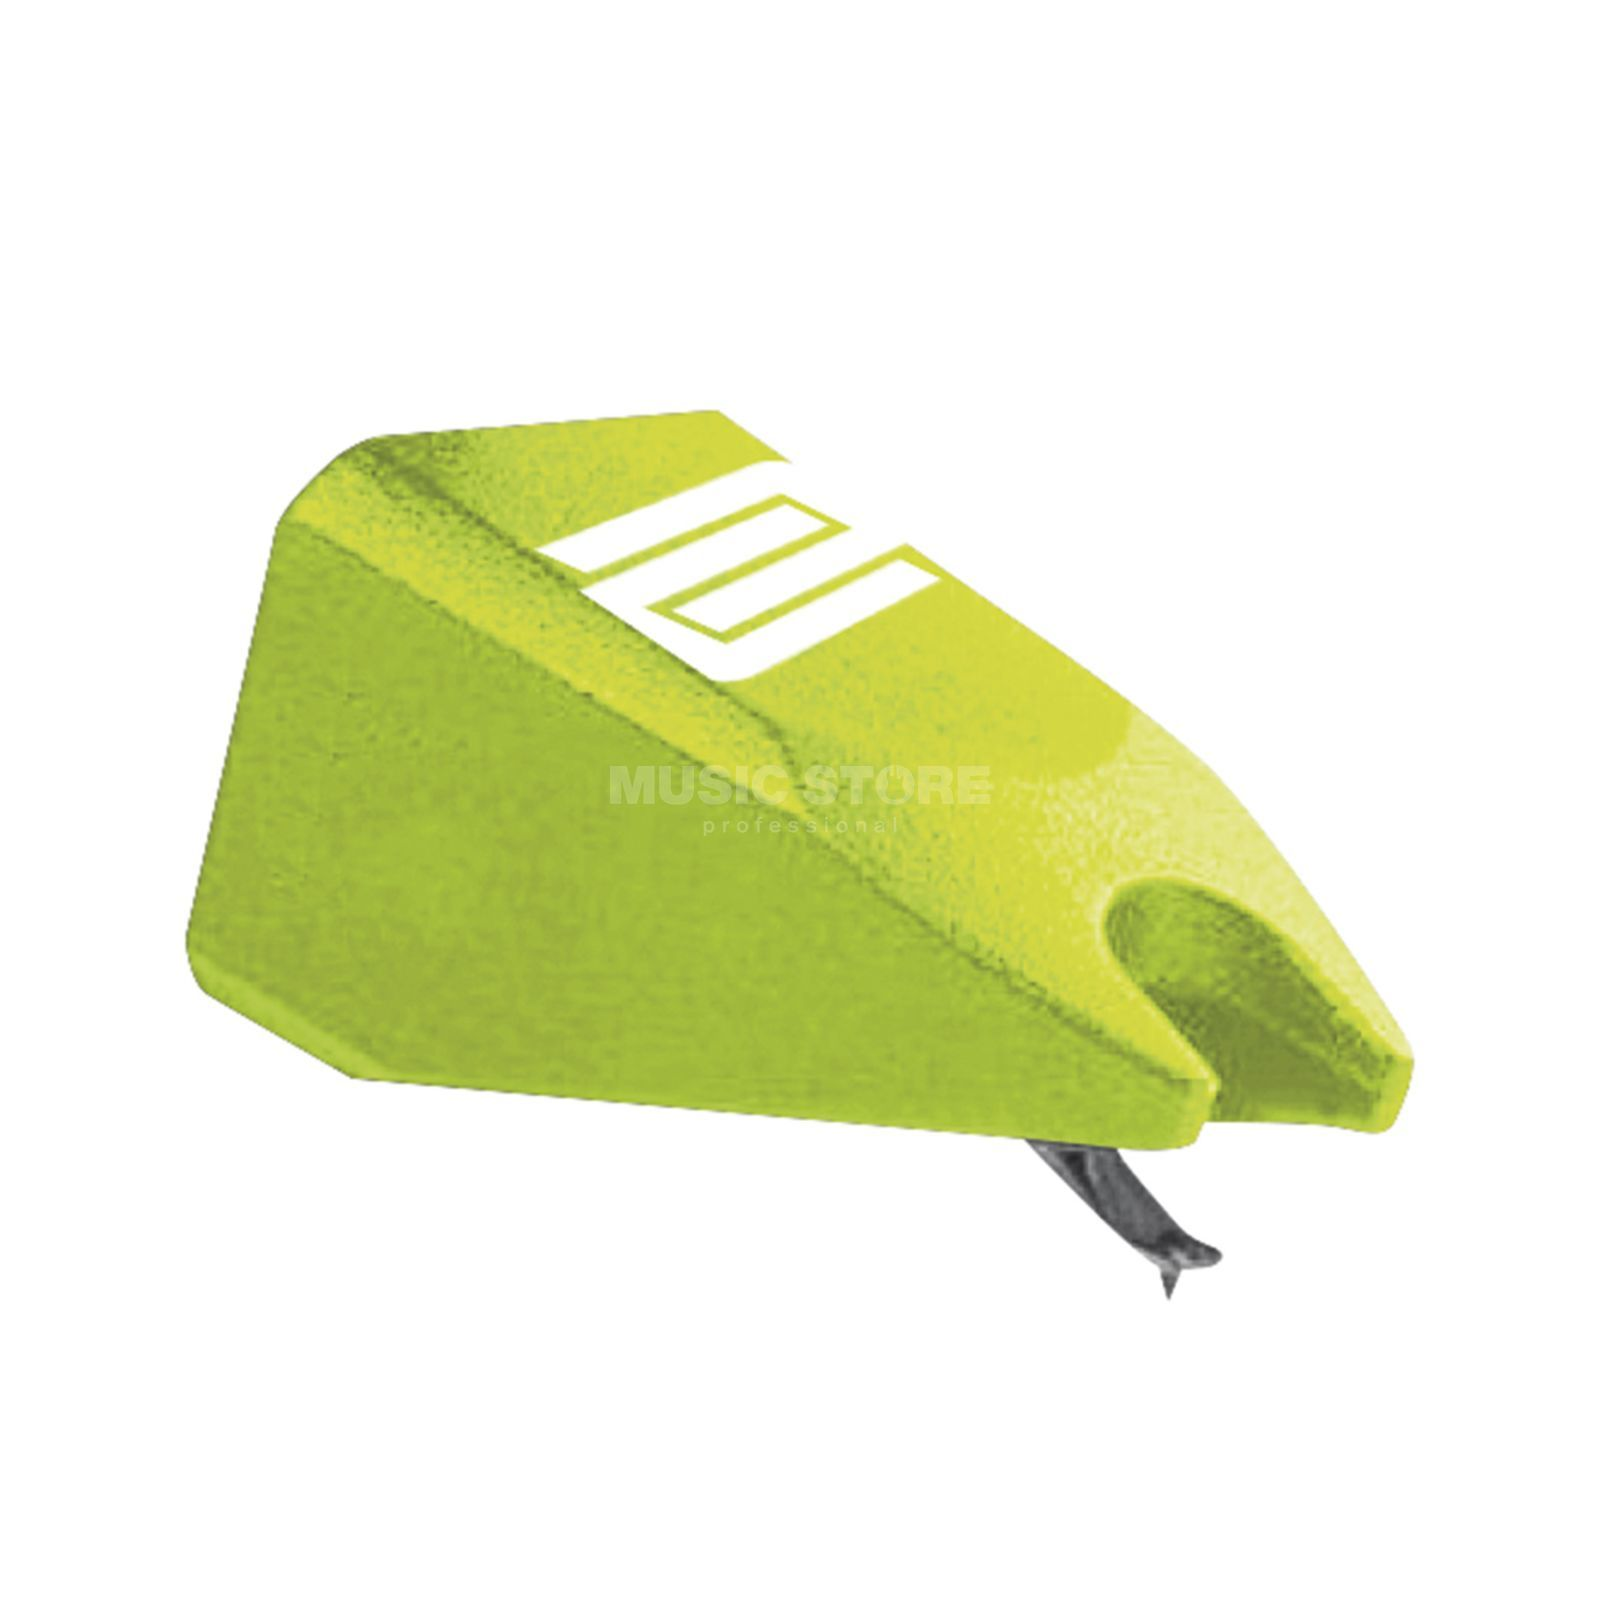 Reloop Replacement Stylus Concorde Green  Product Image